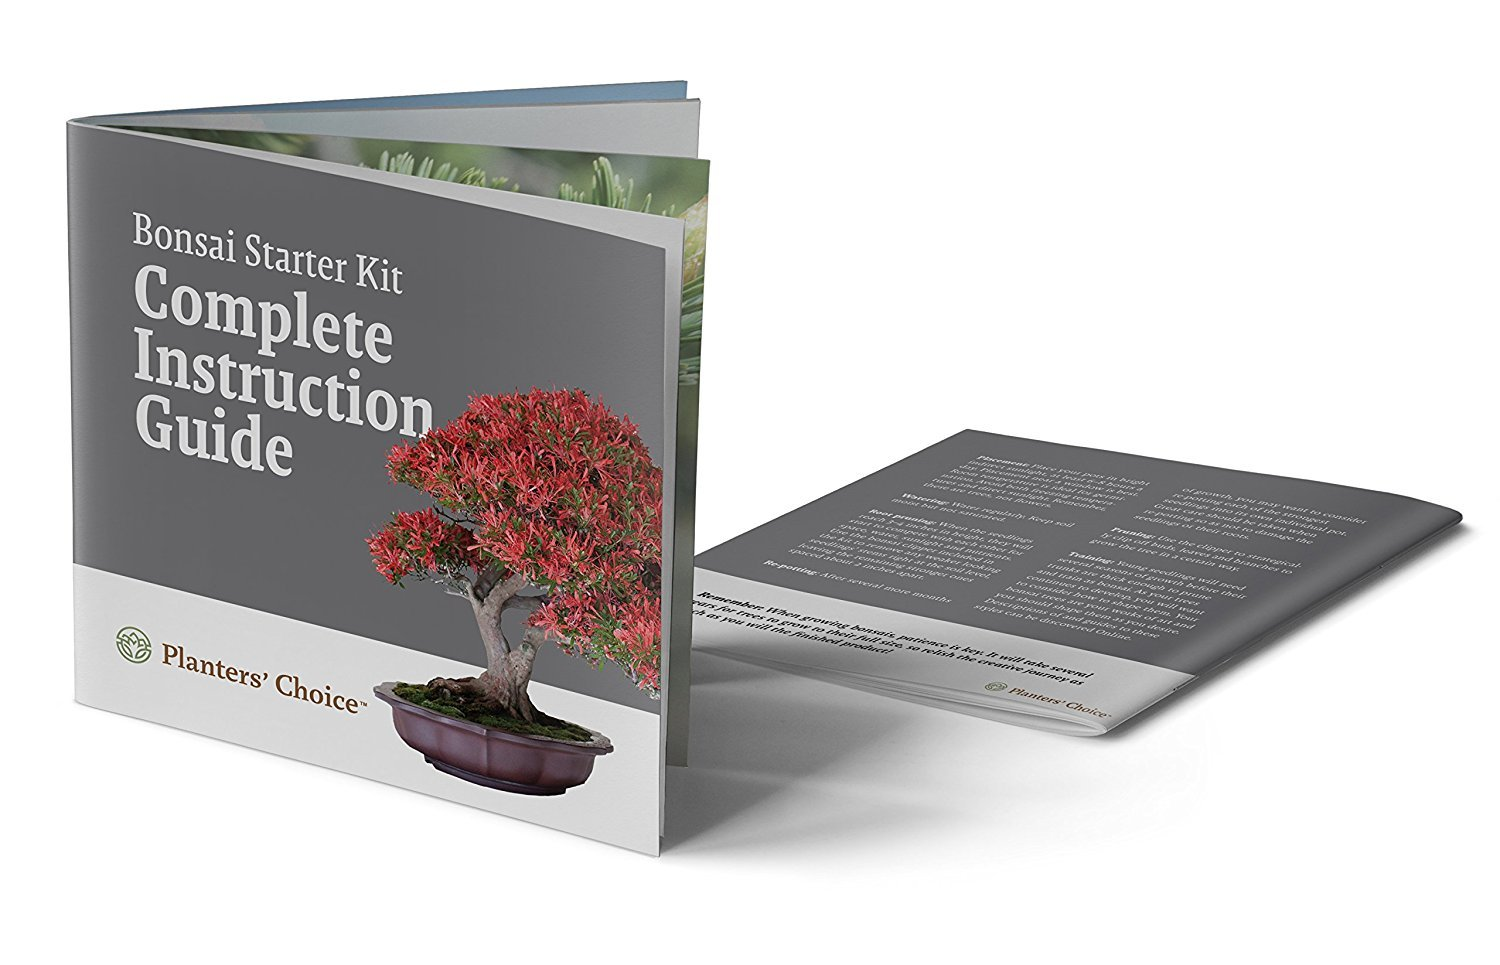 Planters' Choice Bonsai Starter Kit + Tool Kit - the Complete Kit to Easily Grow 4 Bonsai Trees from Seed with Comprehensive Guide & Bamboo Plant Markers - Unique Gift Idea by Planters' Choice (Image #6)